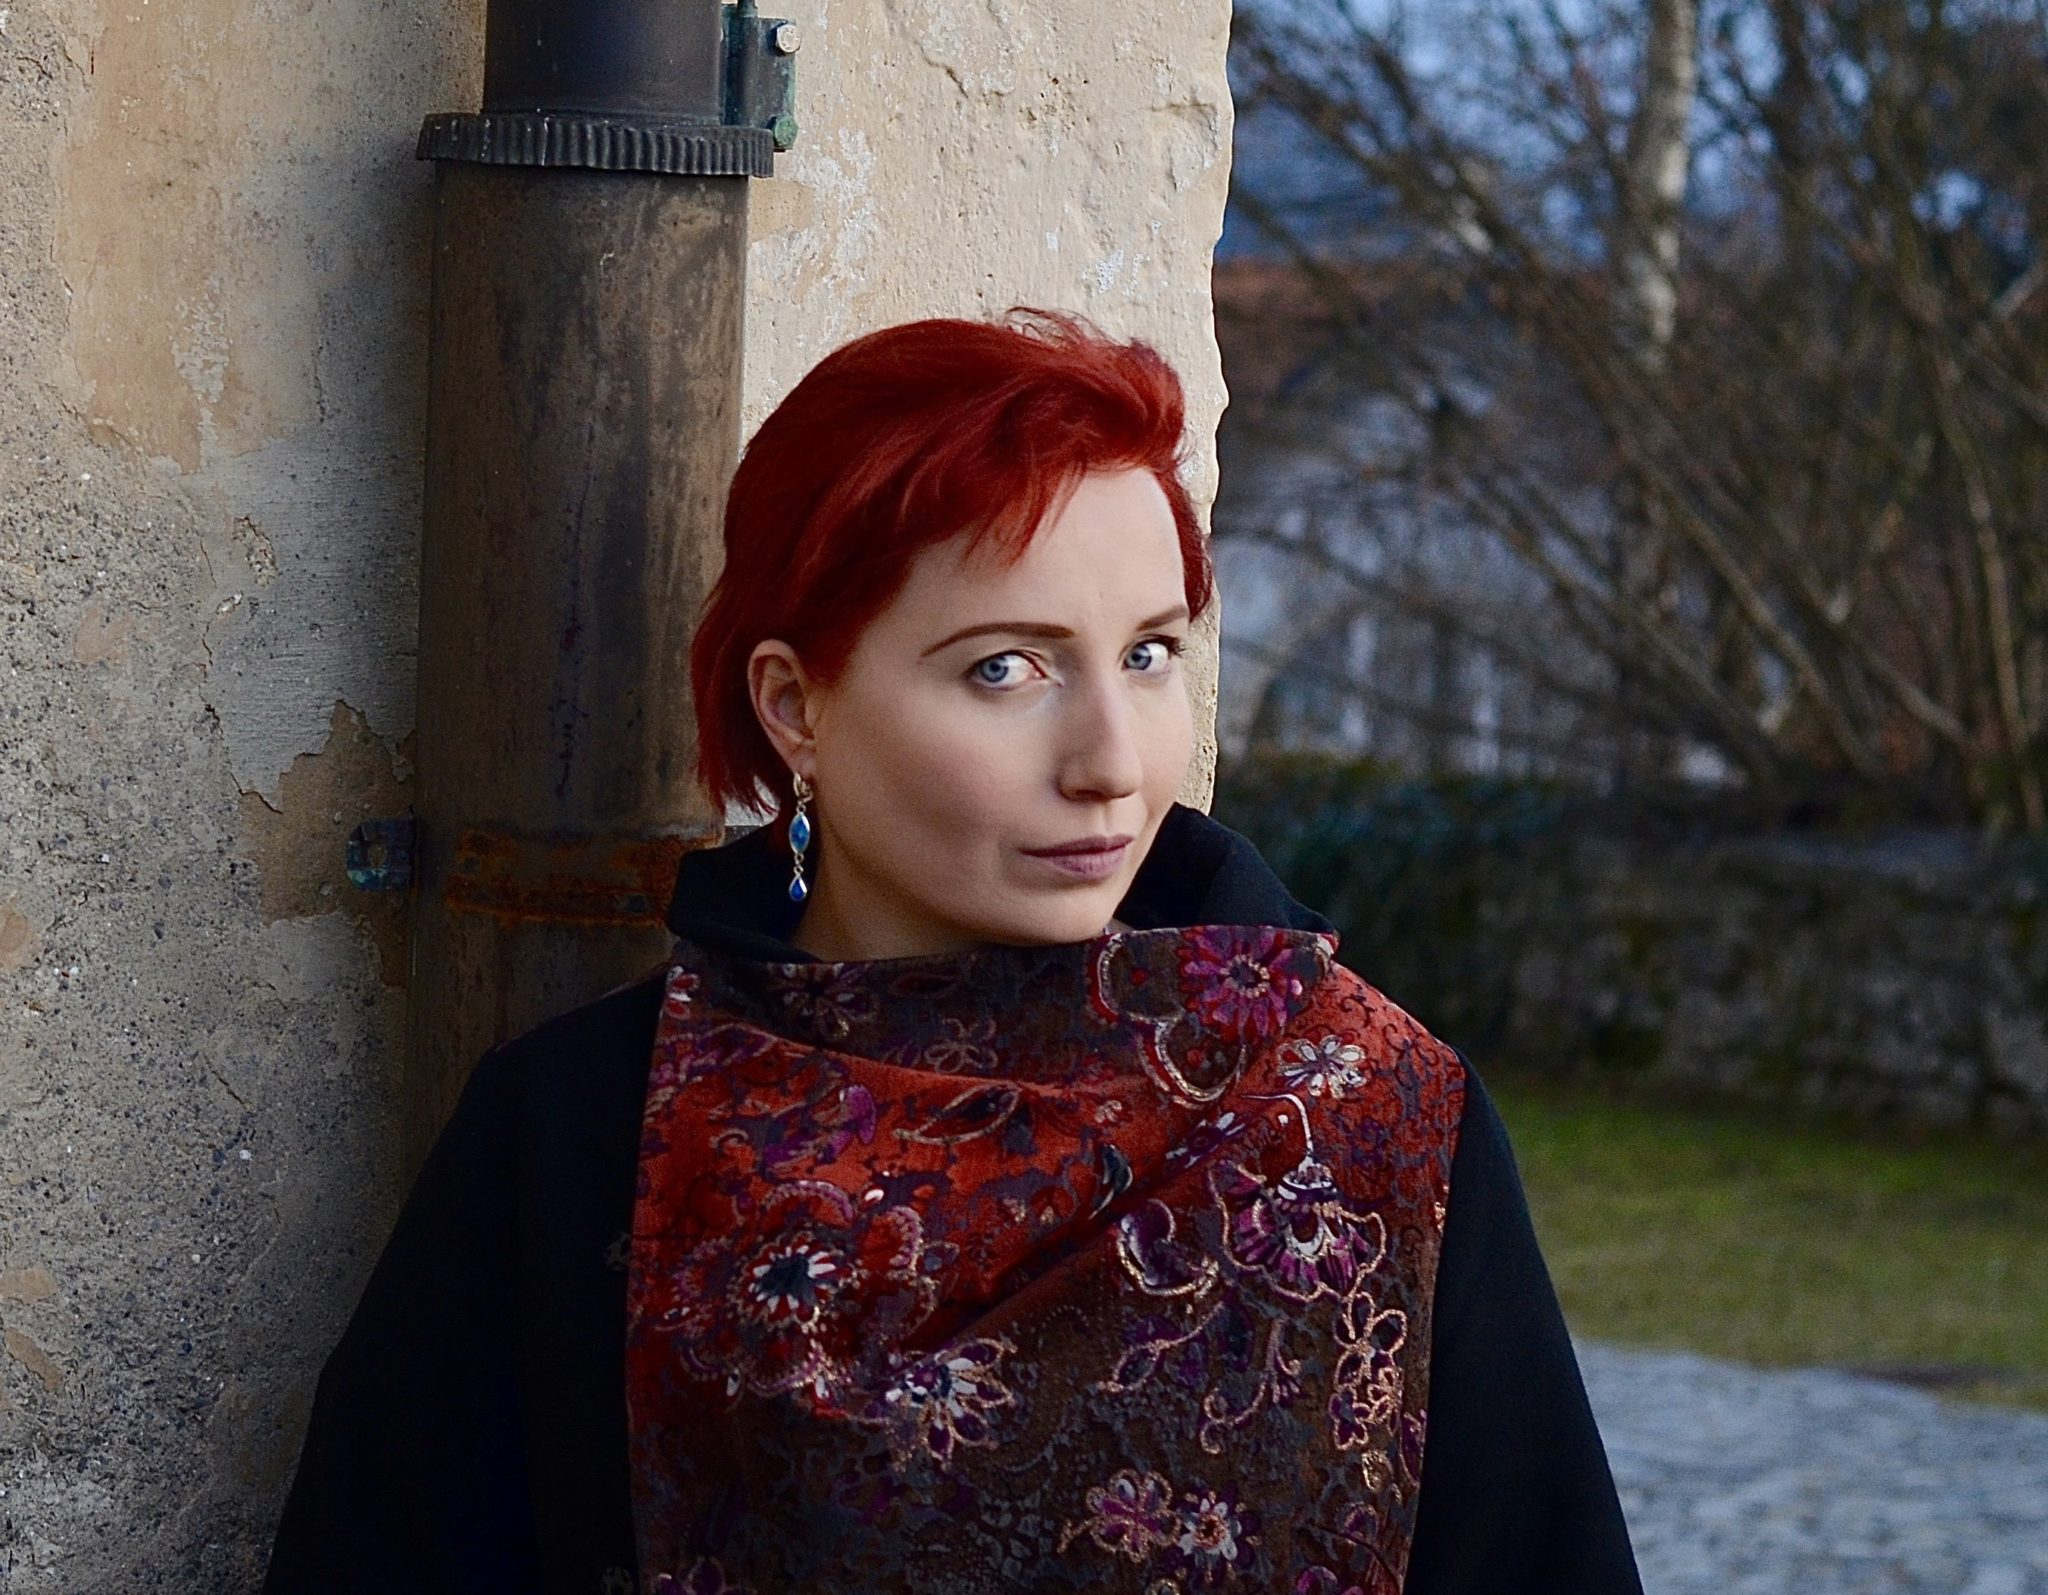 Literary event with Kateryna Kalytko in Novo mesto